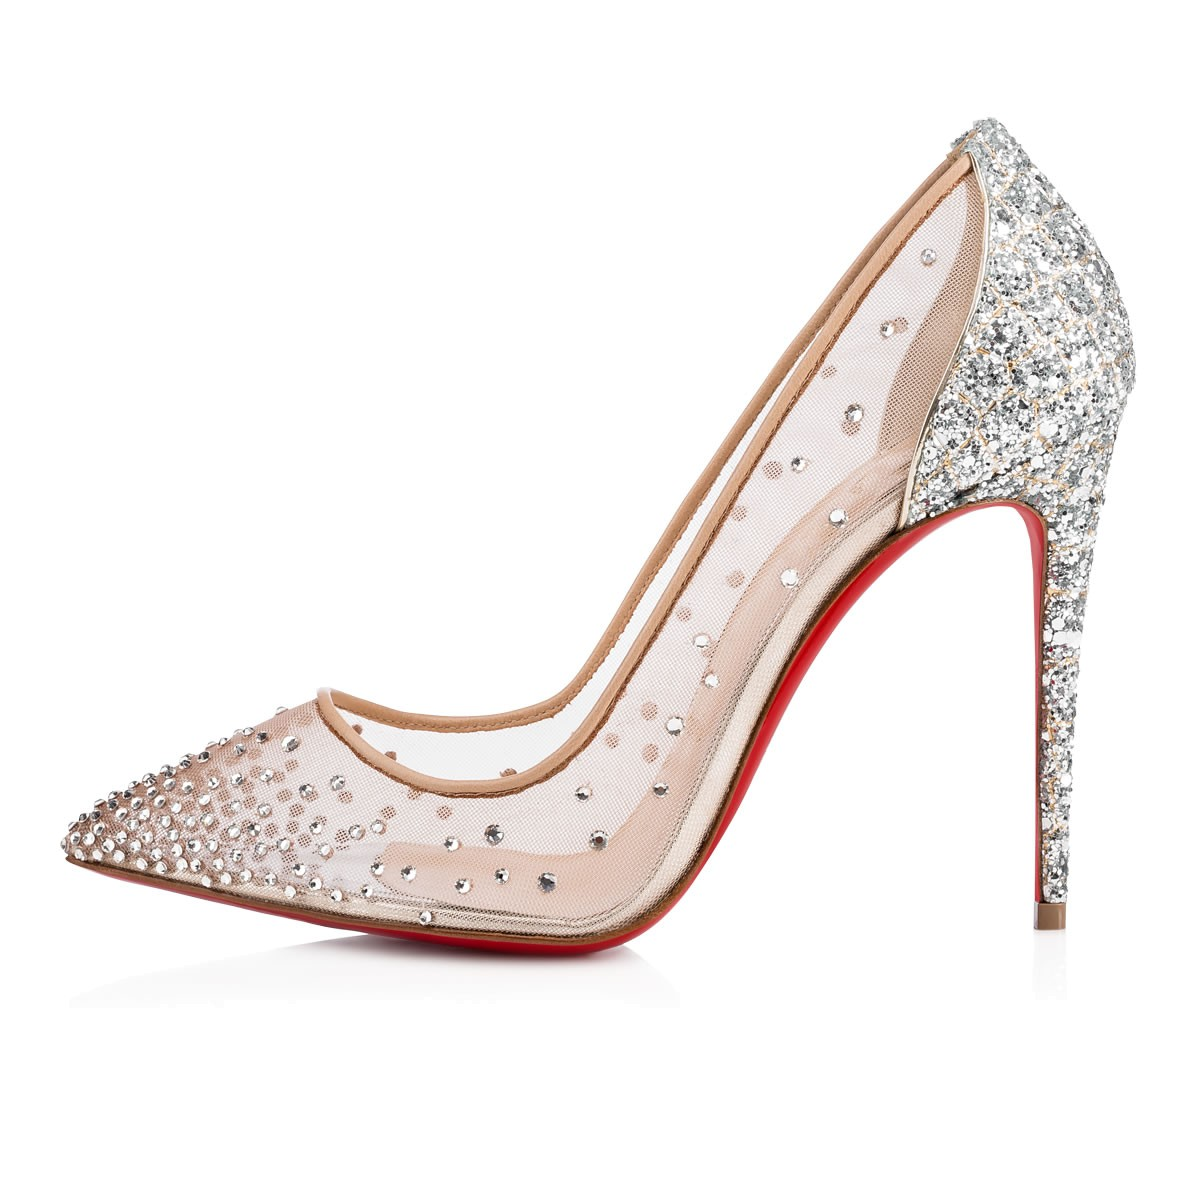 wholesale dealer 99a65 66703 FOLLIES STRASS 100 VERSION CRYSTAL Strass - Women Shoes - Christian  Louboutin